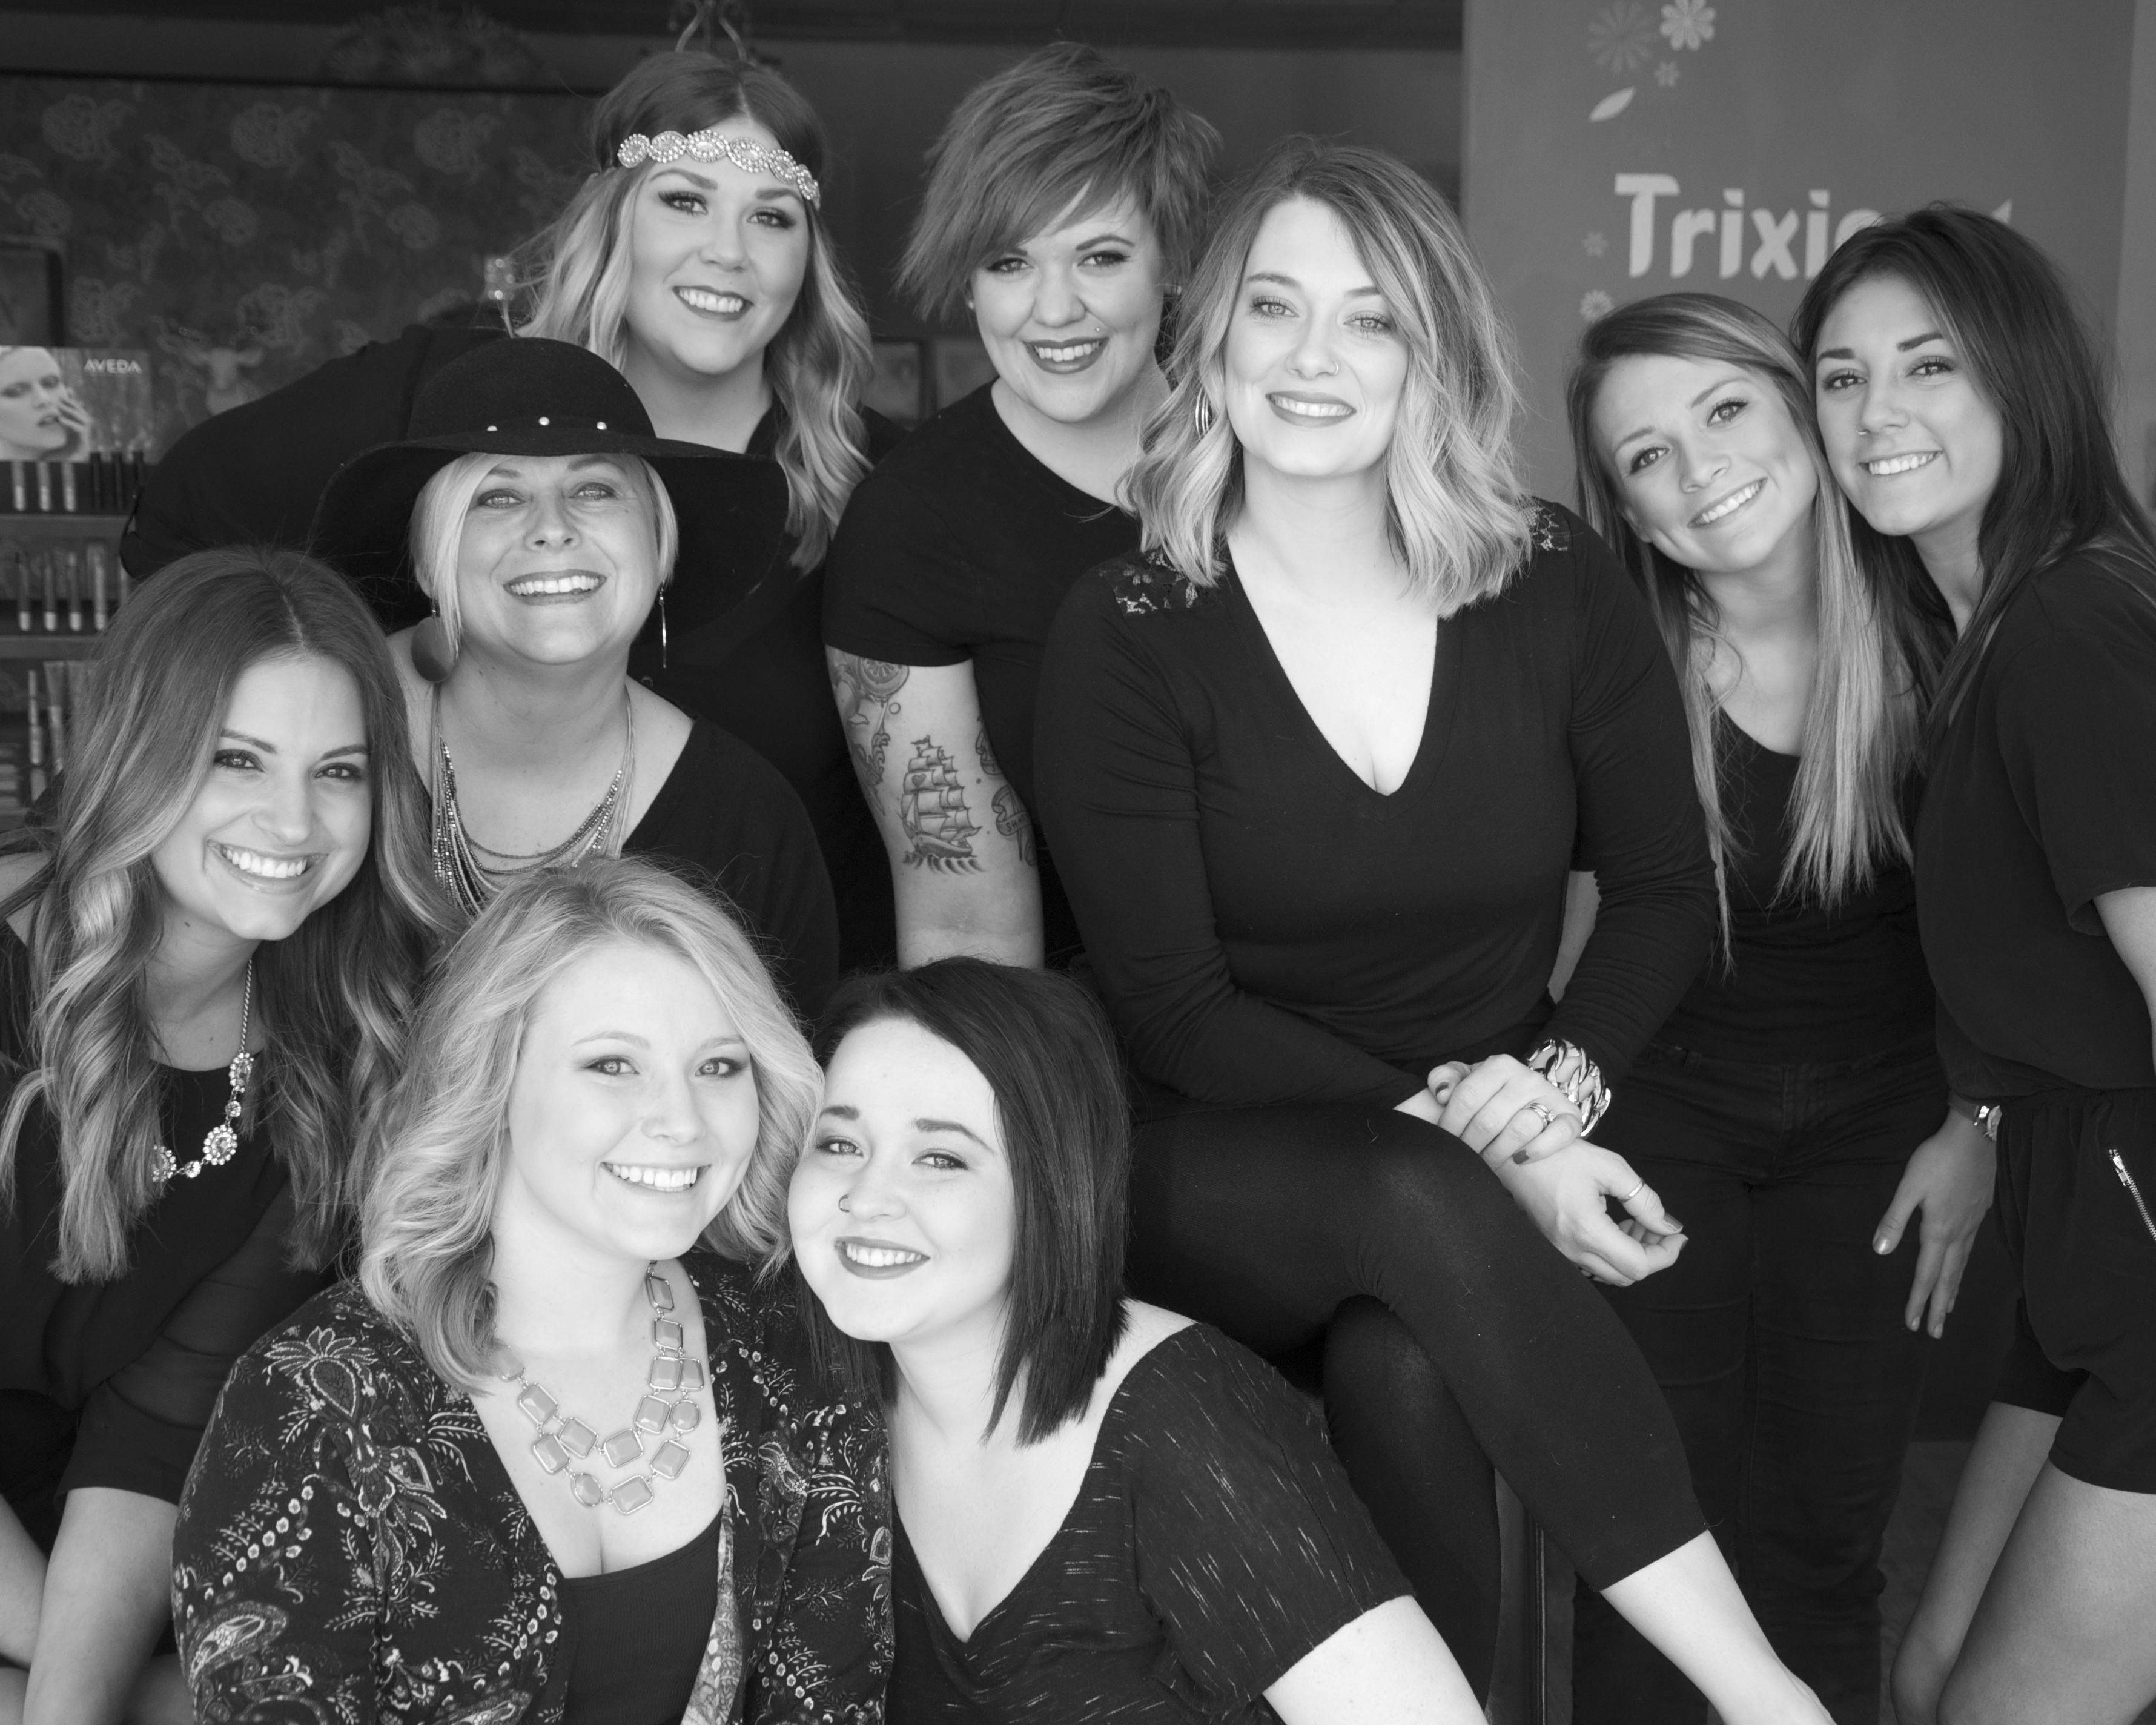 At Trixies Salon in Des Moines, Iowa, the need to give back springs from the heart.